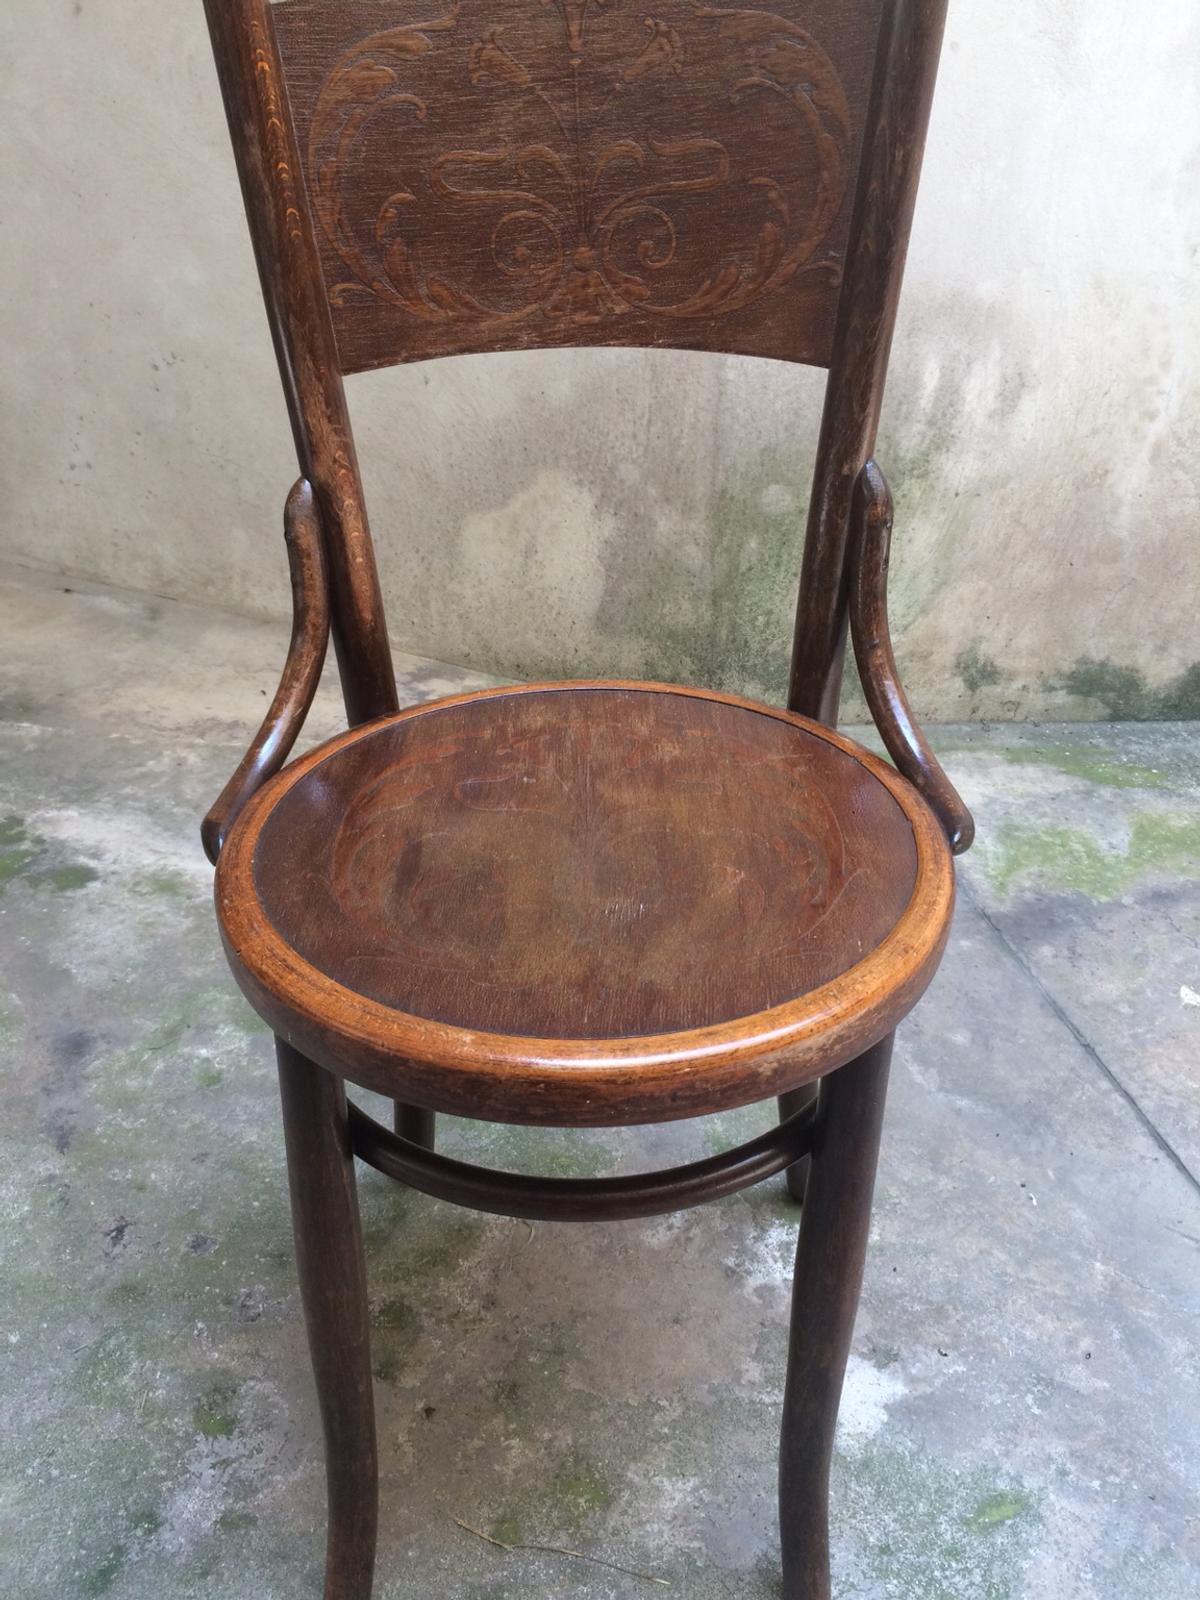 Sedie Antiche Thonet.Sedie Antiche In 20064 Gorgonzola For 200 00 For Sale Shpock